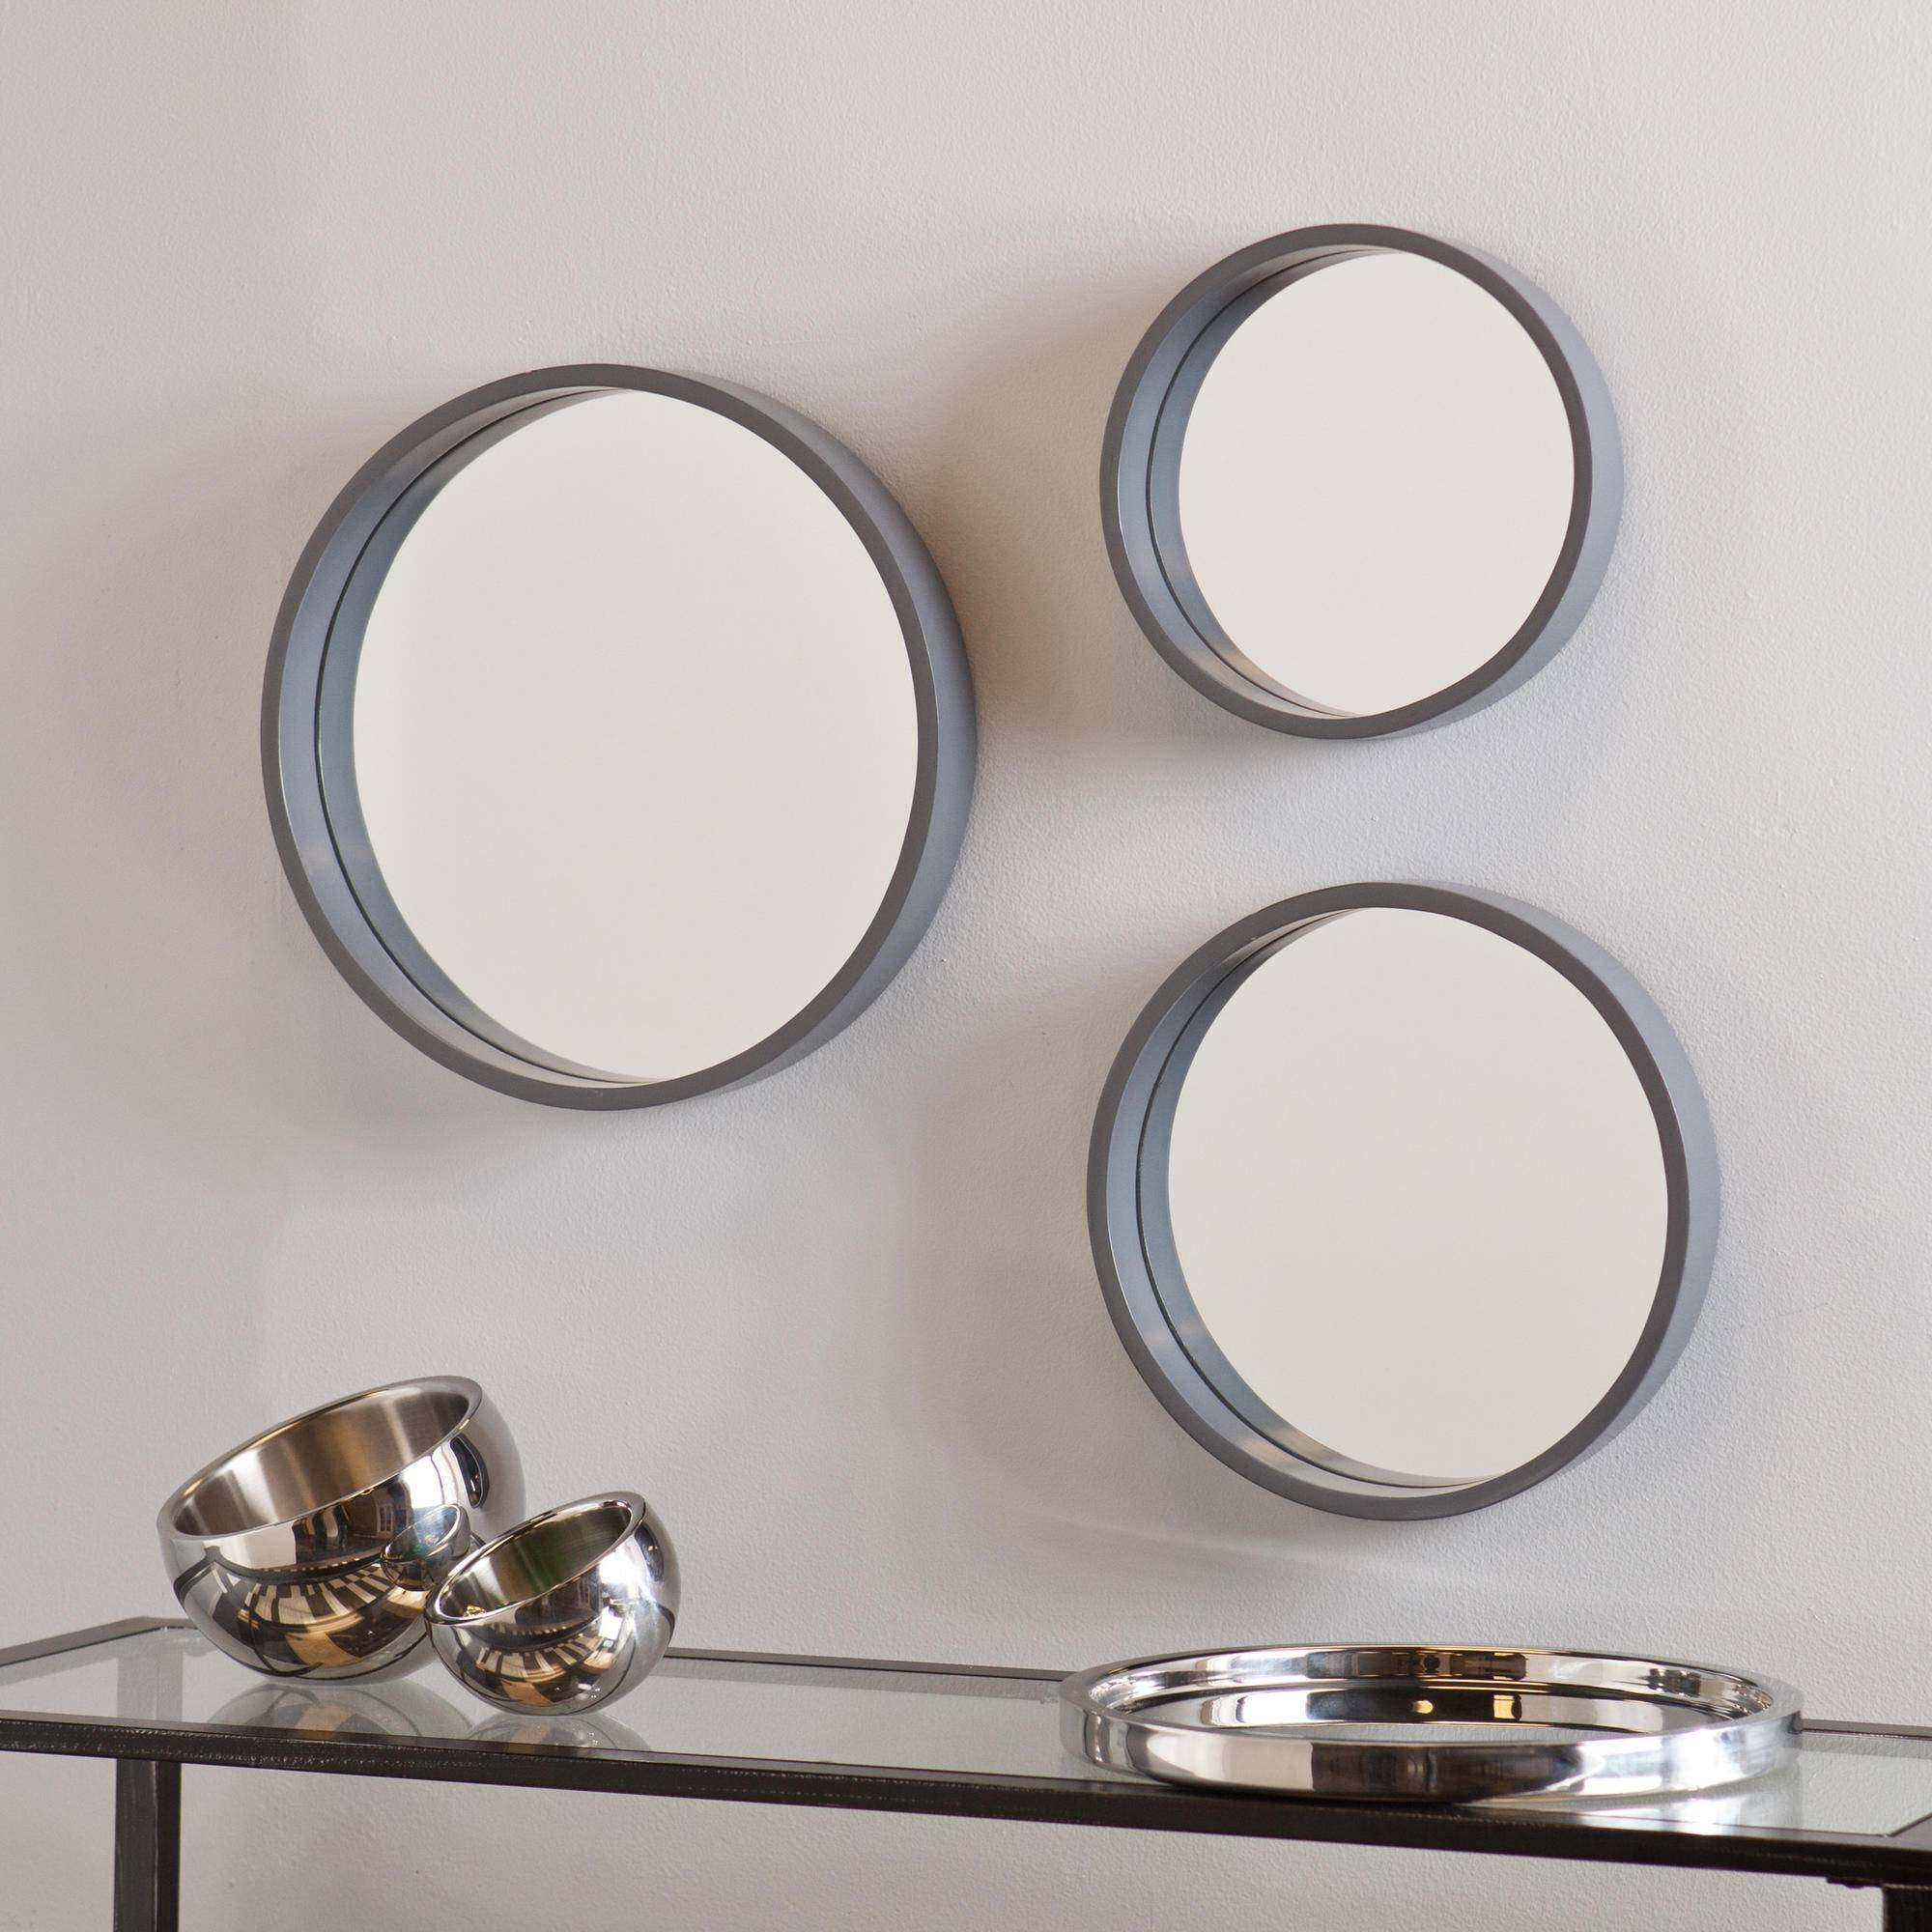 Furniture: Mirrored Sliding Door Bathroom Wall Cabinetwayfair for Funky Wall Mirrors (Image 7 of 15)